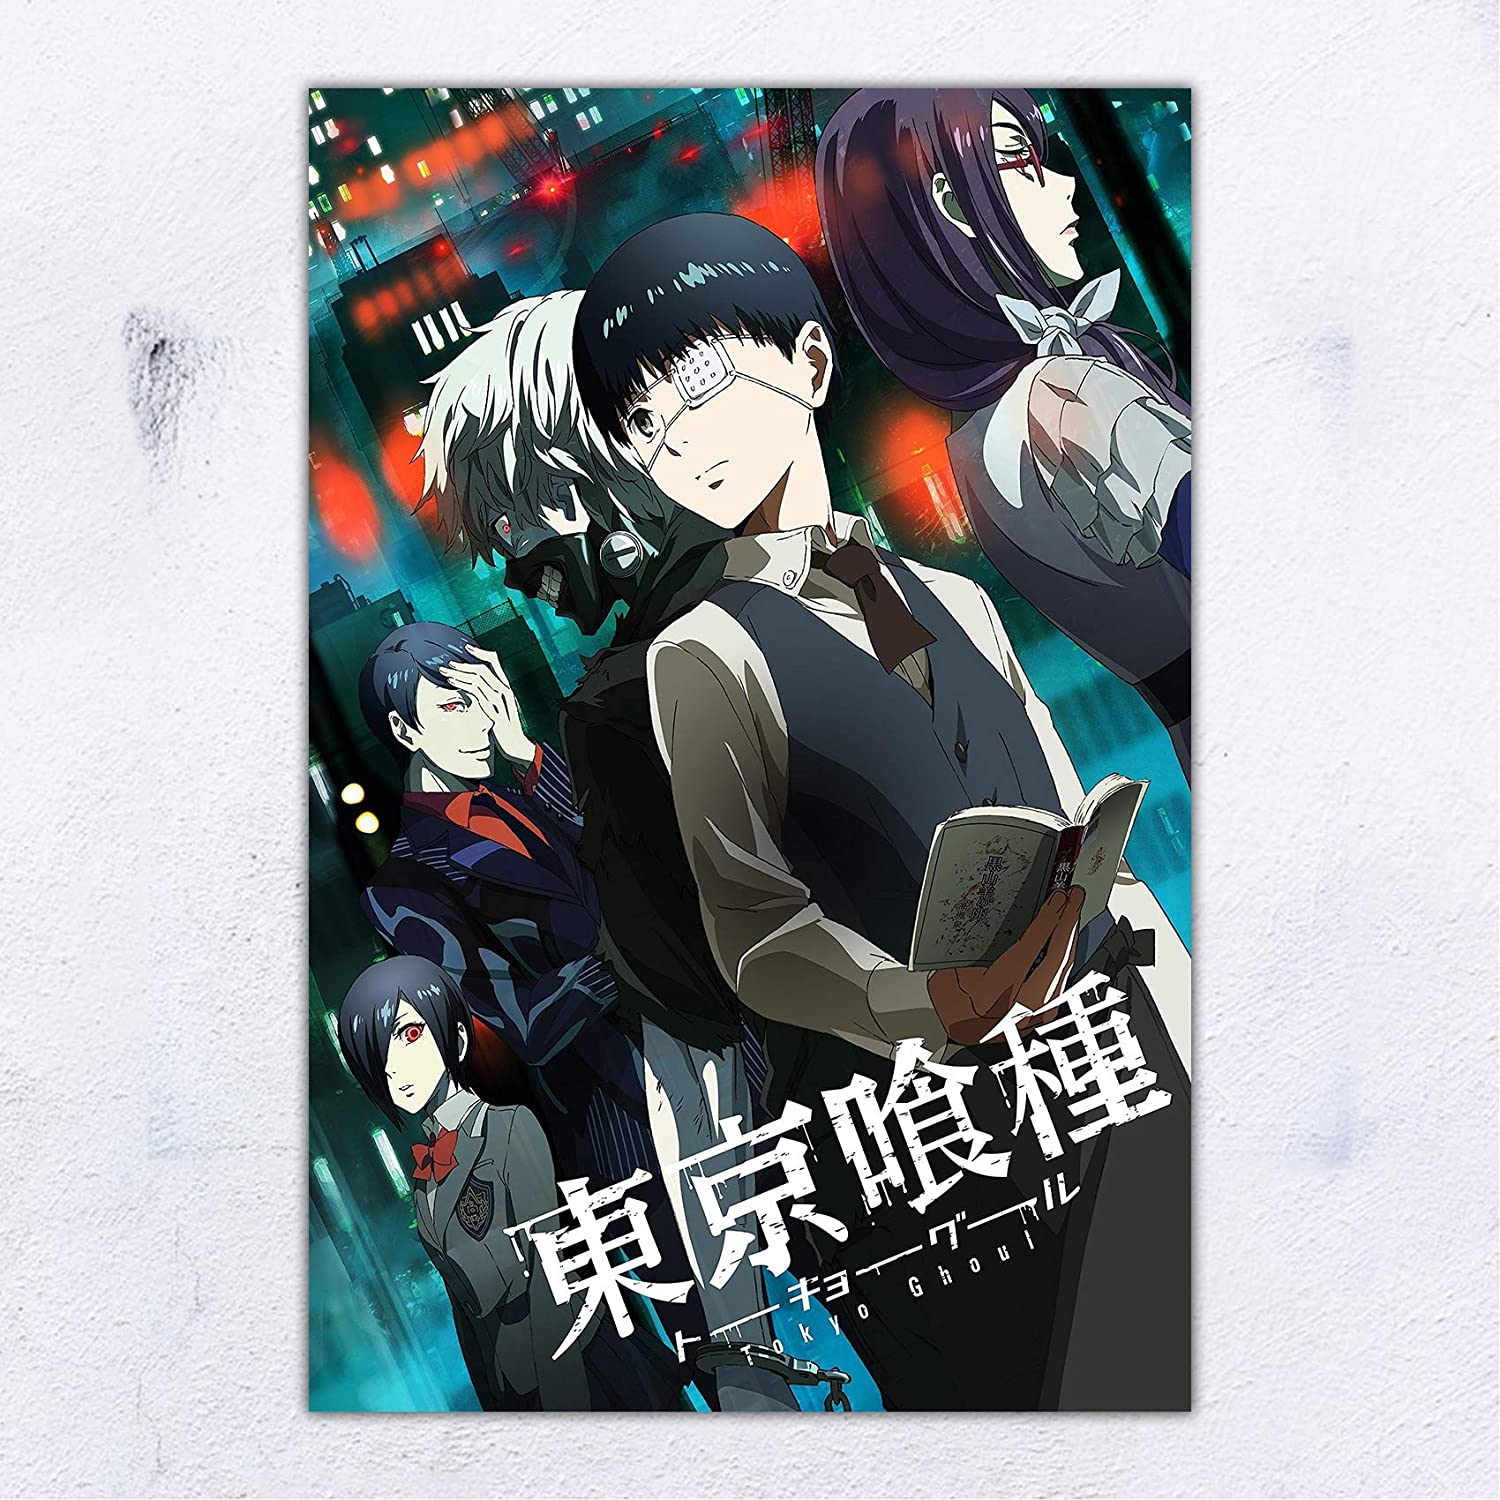 UpdateClassic Tokyo Ghoul nime Poster and Prints Unframed Wall Art Gifts Decor 11x17